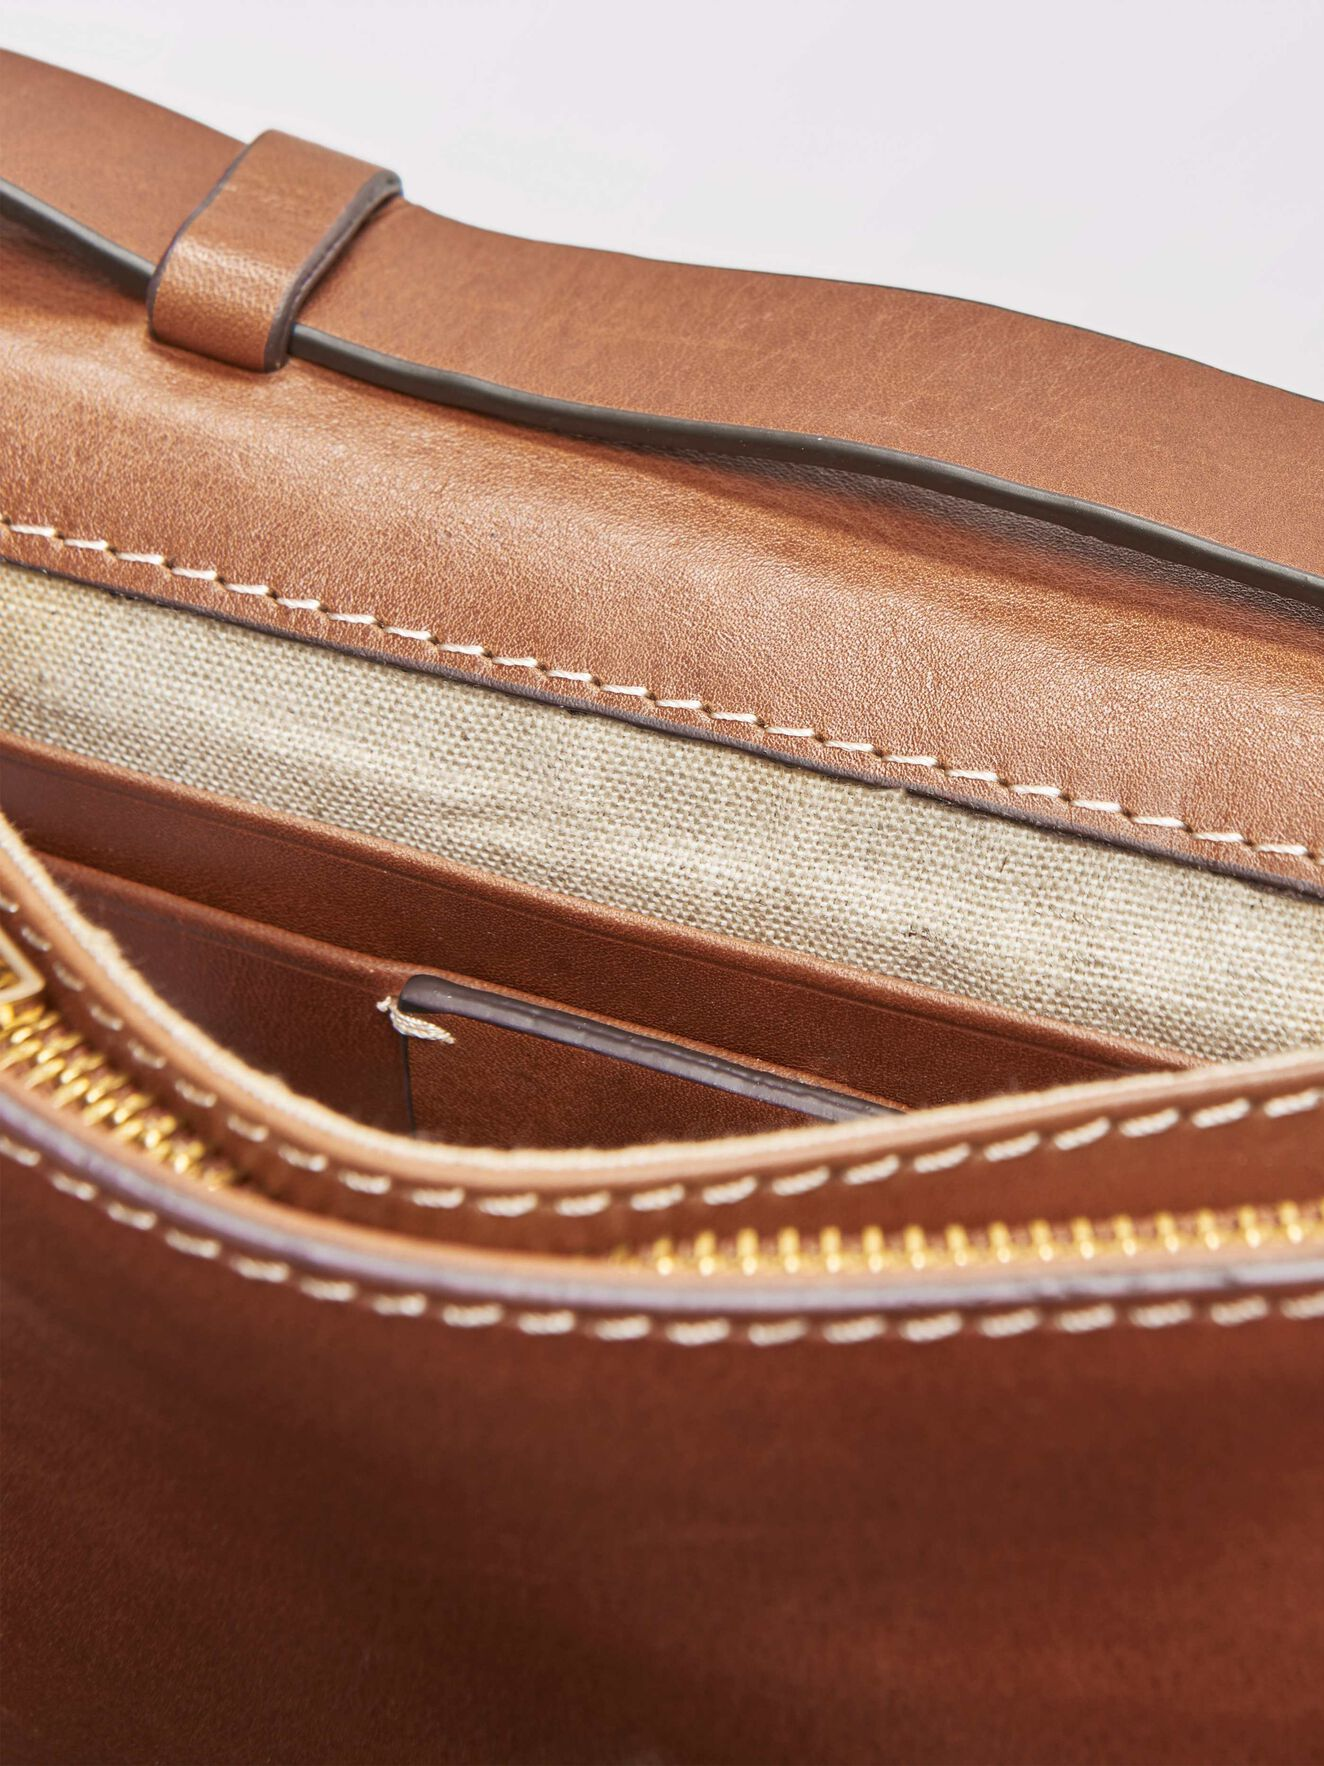 Constantia Clutch in Light Brown from Tiger of Sweden